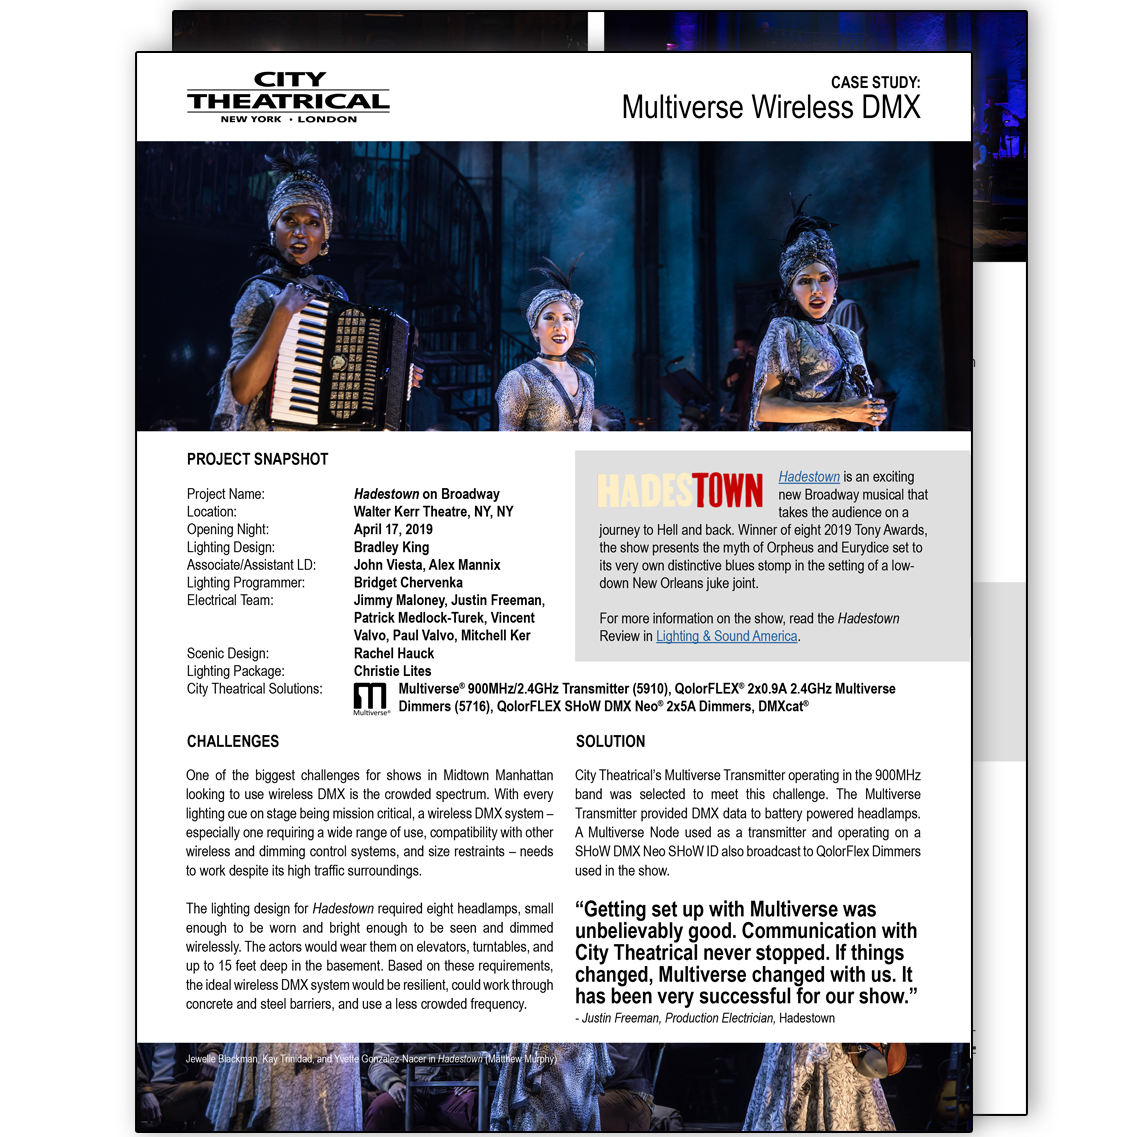 Case Study: Multiverse Wireless DMX at Hadestown on Broadway